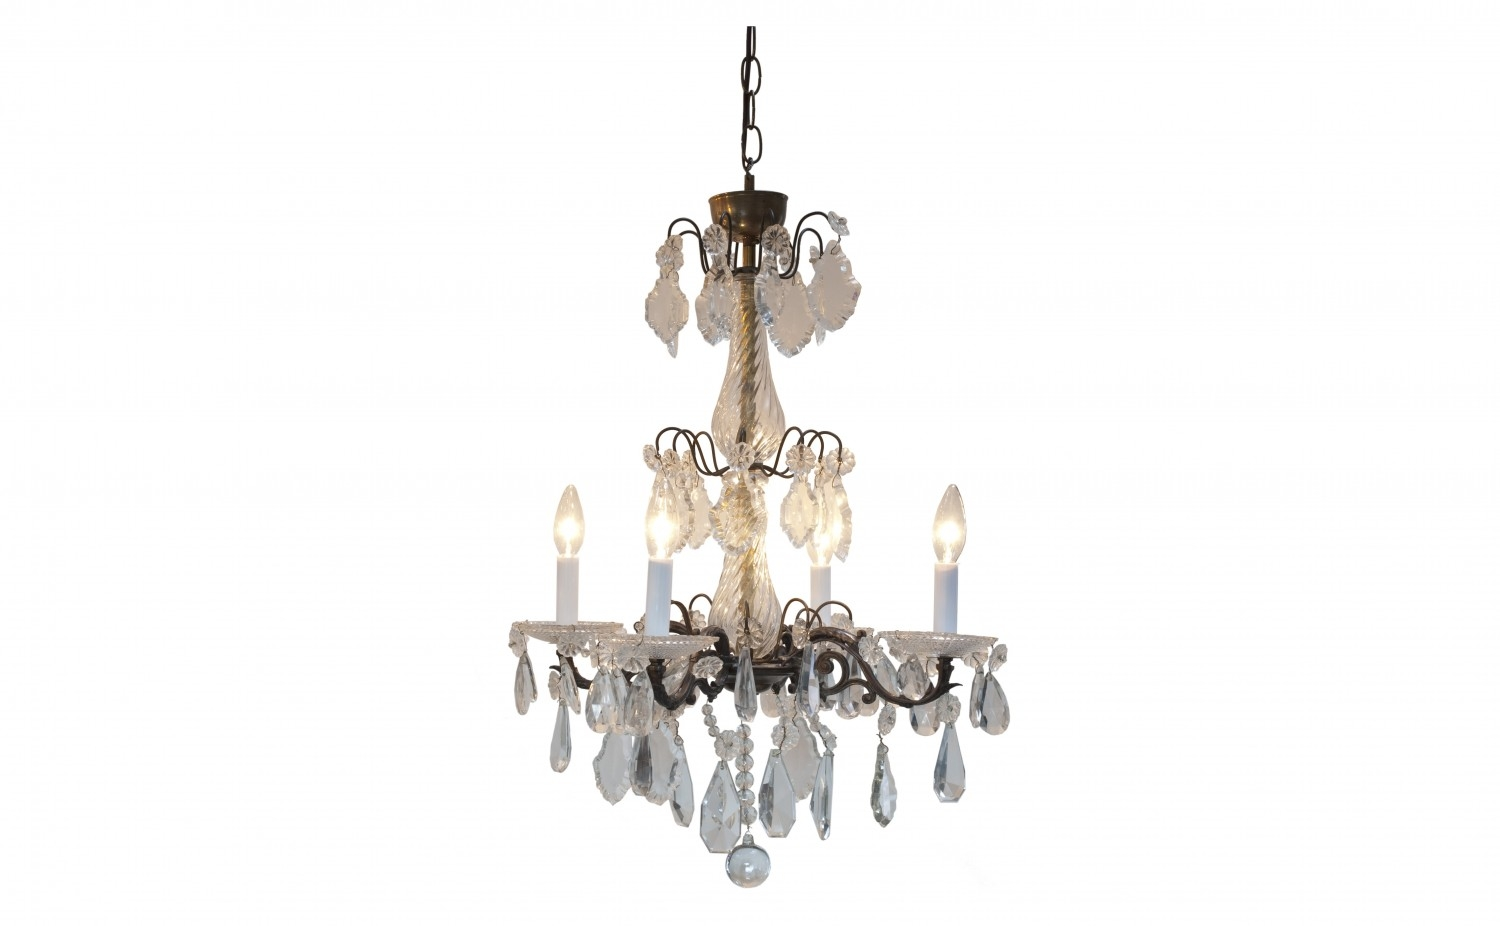 Antique Chandelier Jayson Home For Antique Chandeliers (Image 3 of 15)